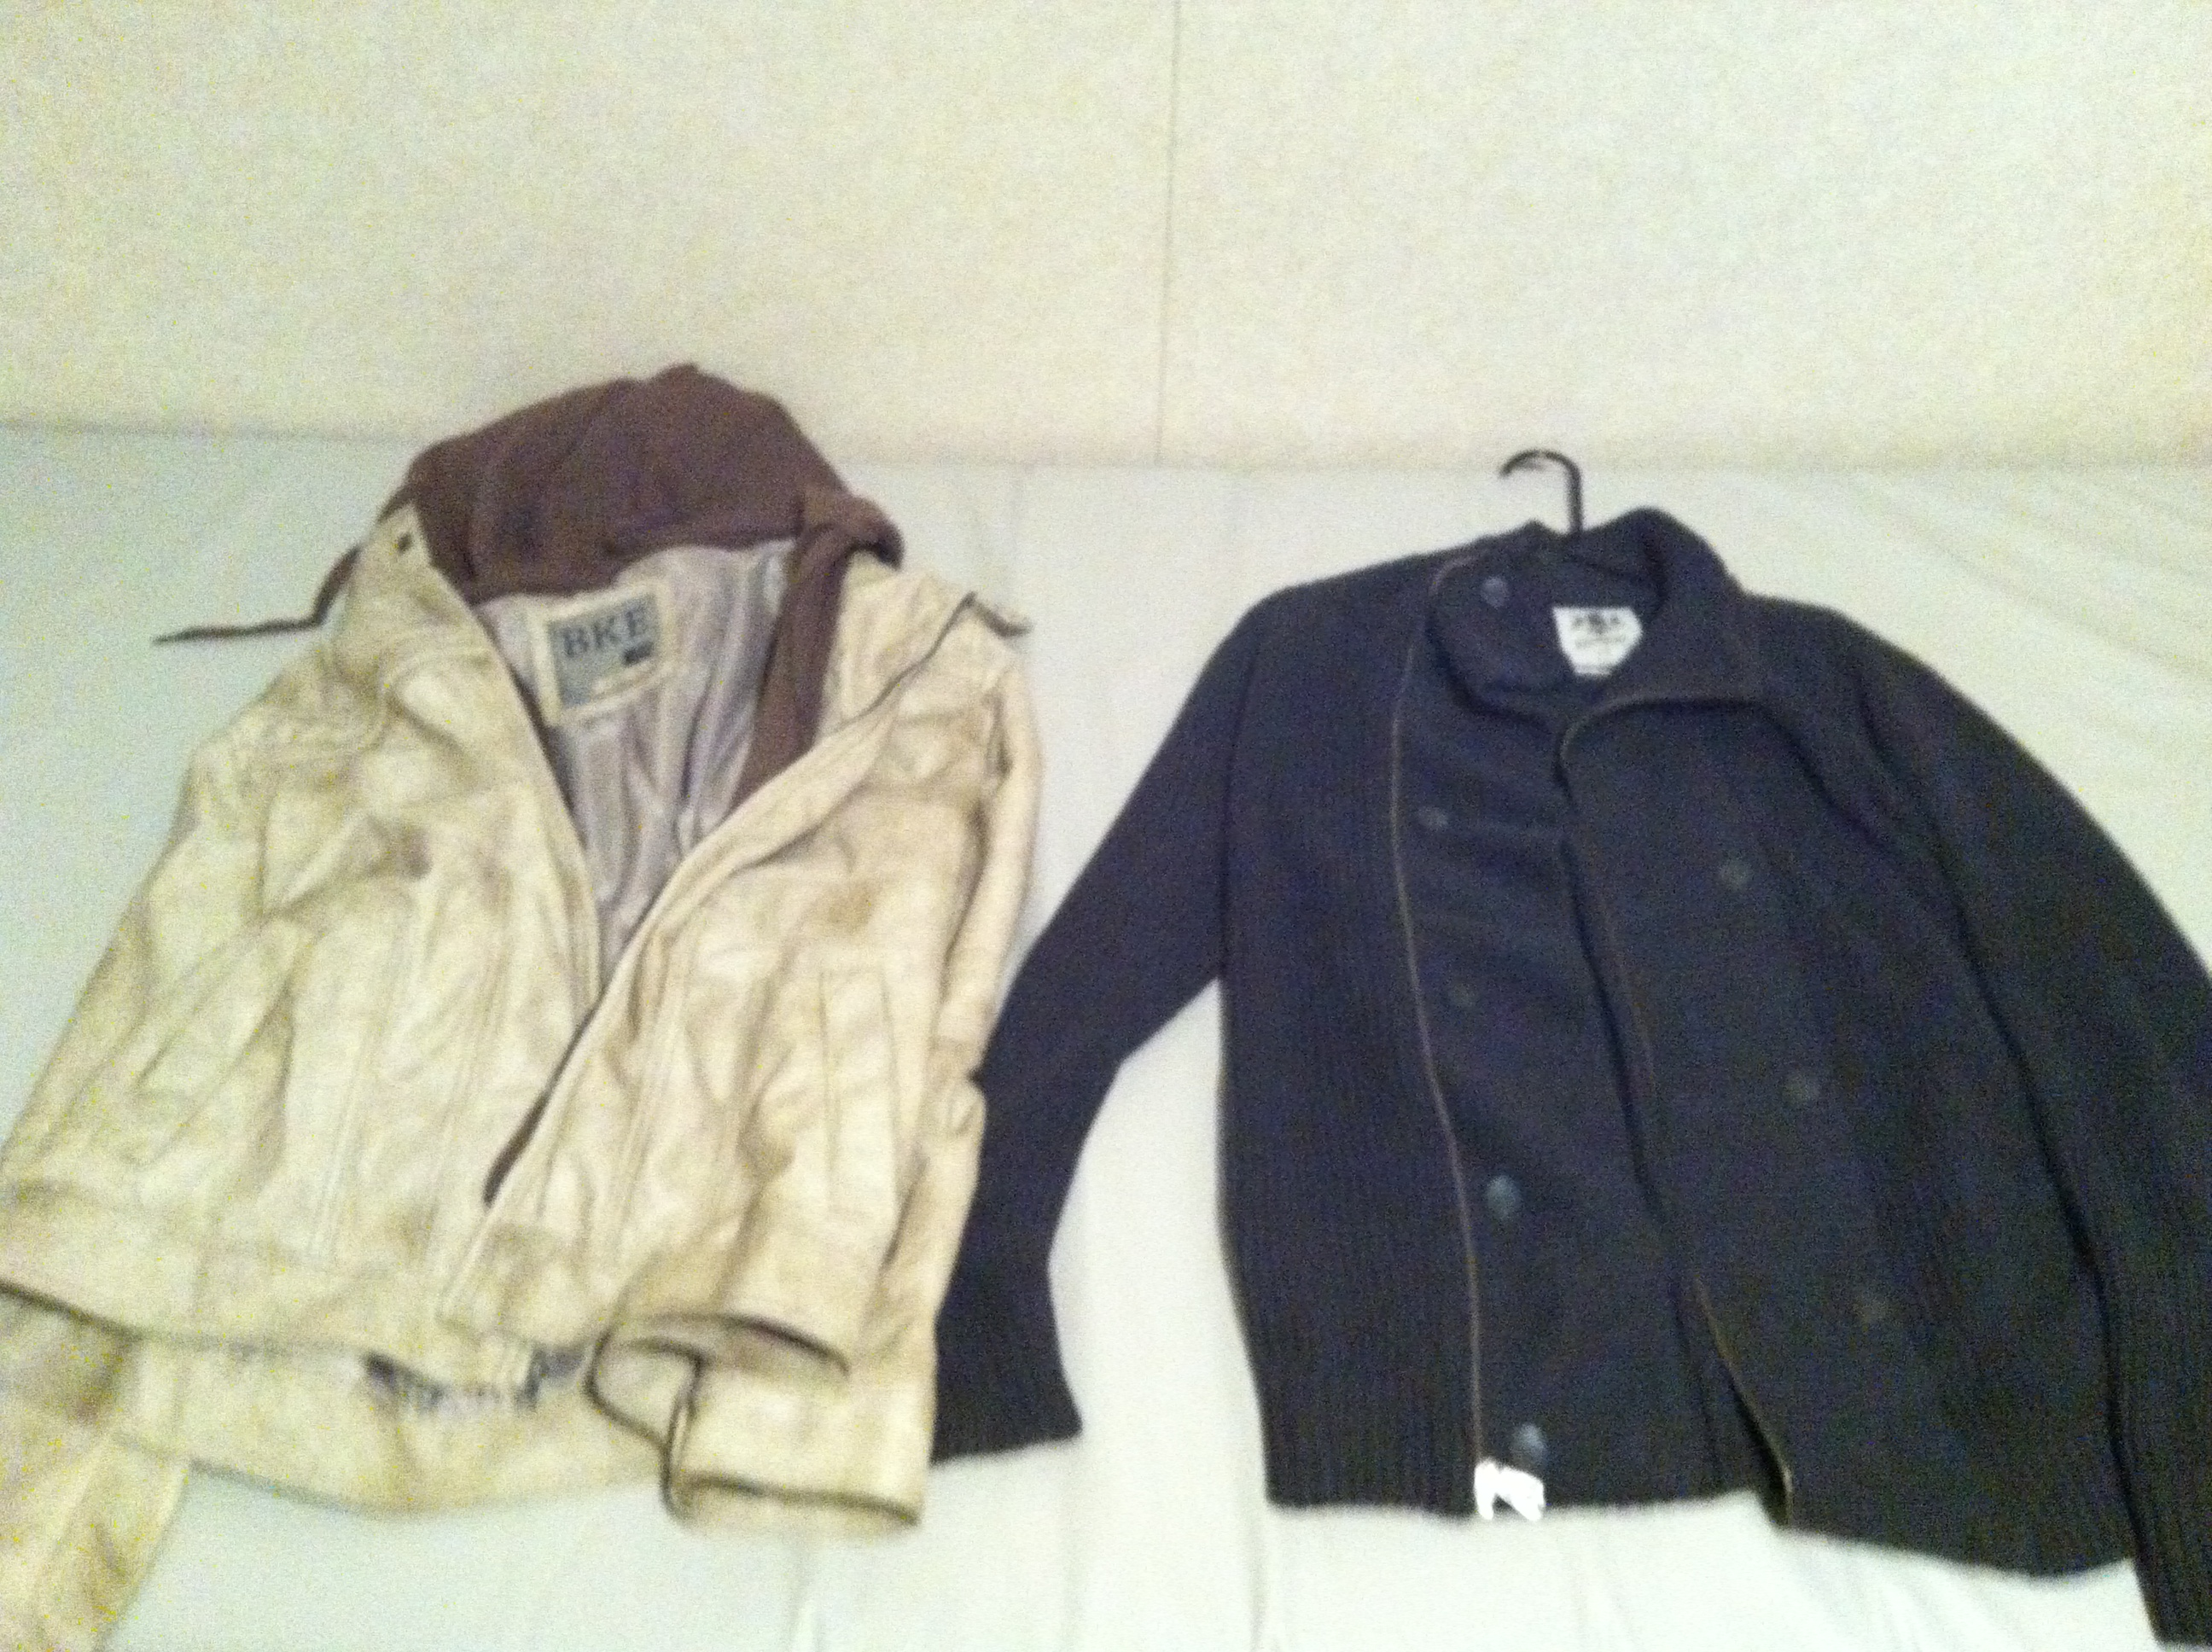 BKE Leather Jacket and Express Double Breasted Zip up Sweater